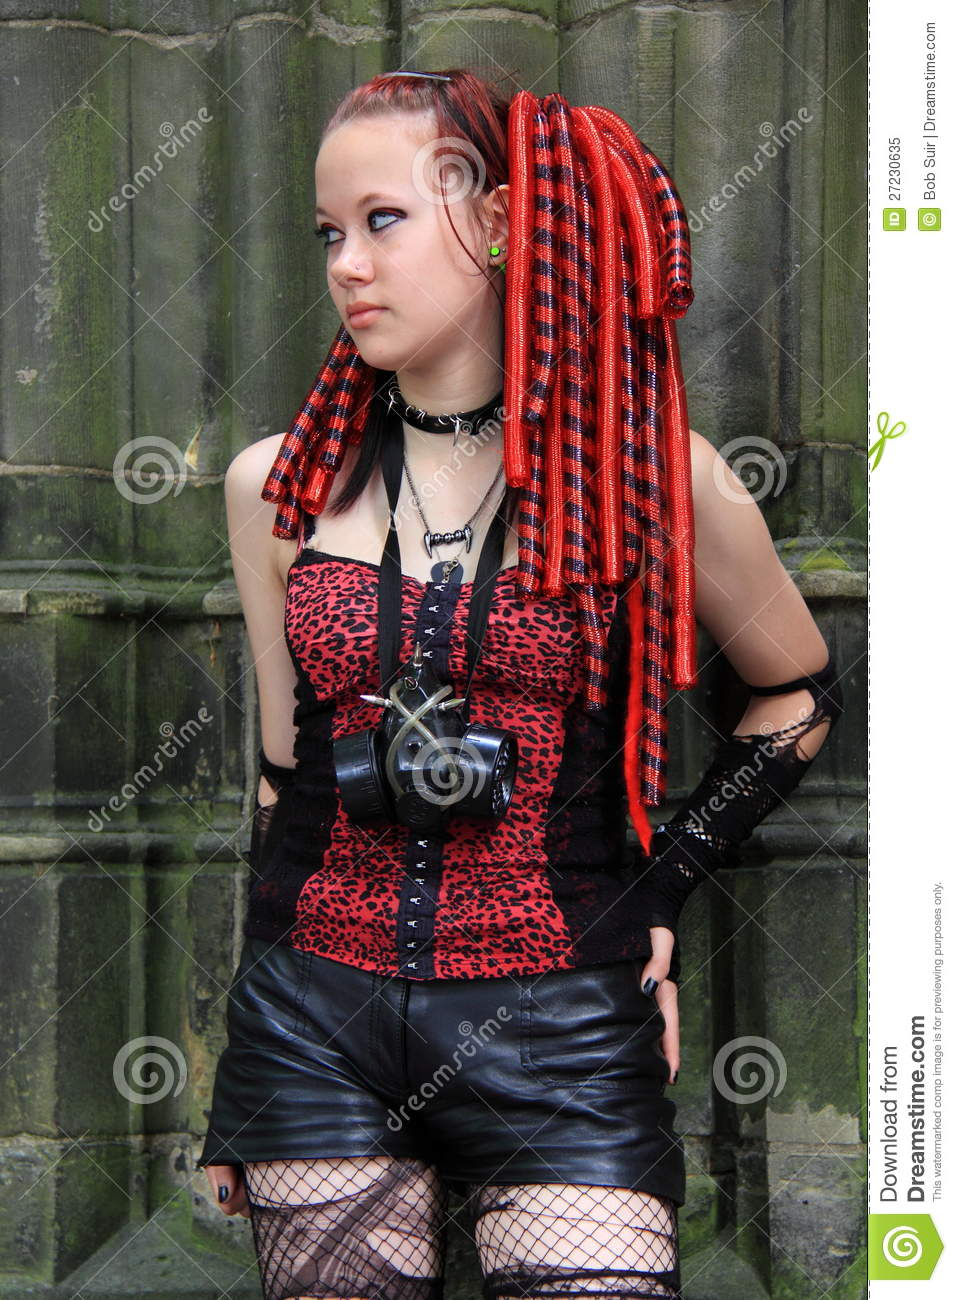 Beautiful Girl Wallpaper Gothic Cyber Girl Hair Extensions Editorial Image Image